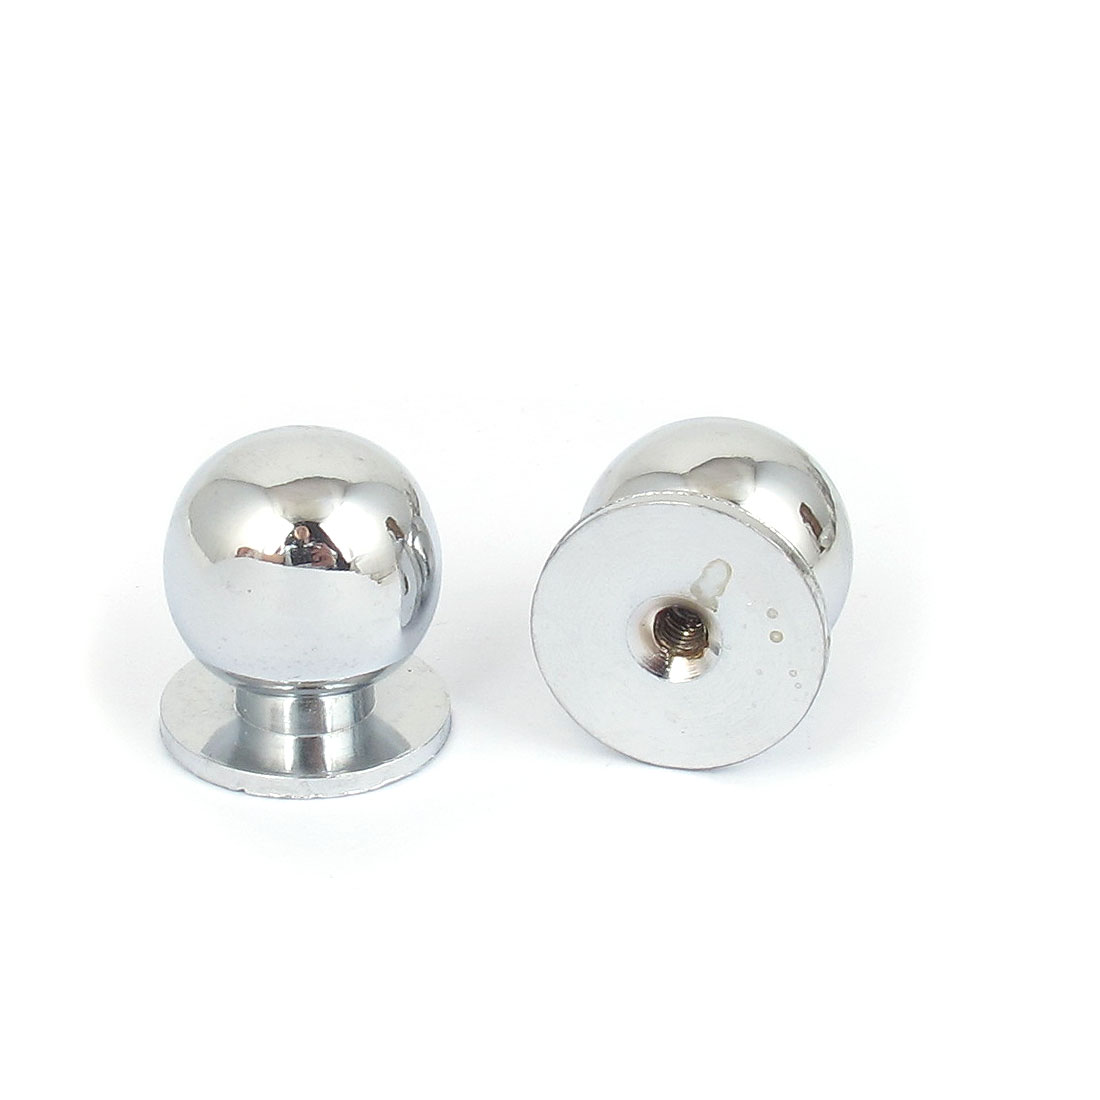 Household 22mm Dia Metal Ball Shape Cabinet Cupboard Handle Pull Knob 2Pcs